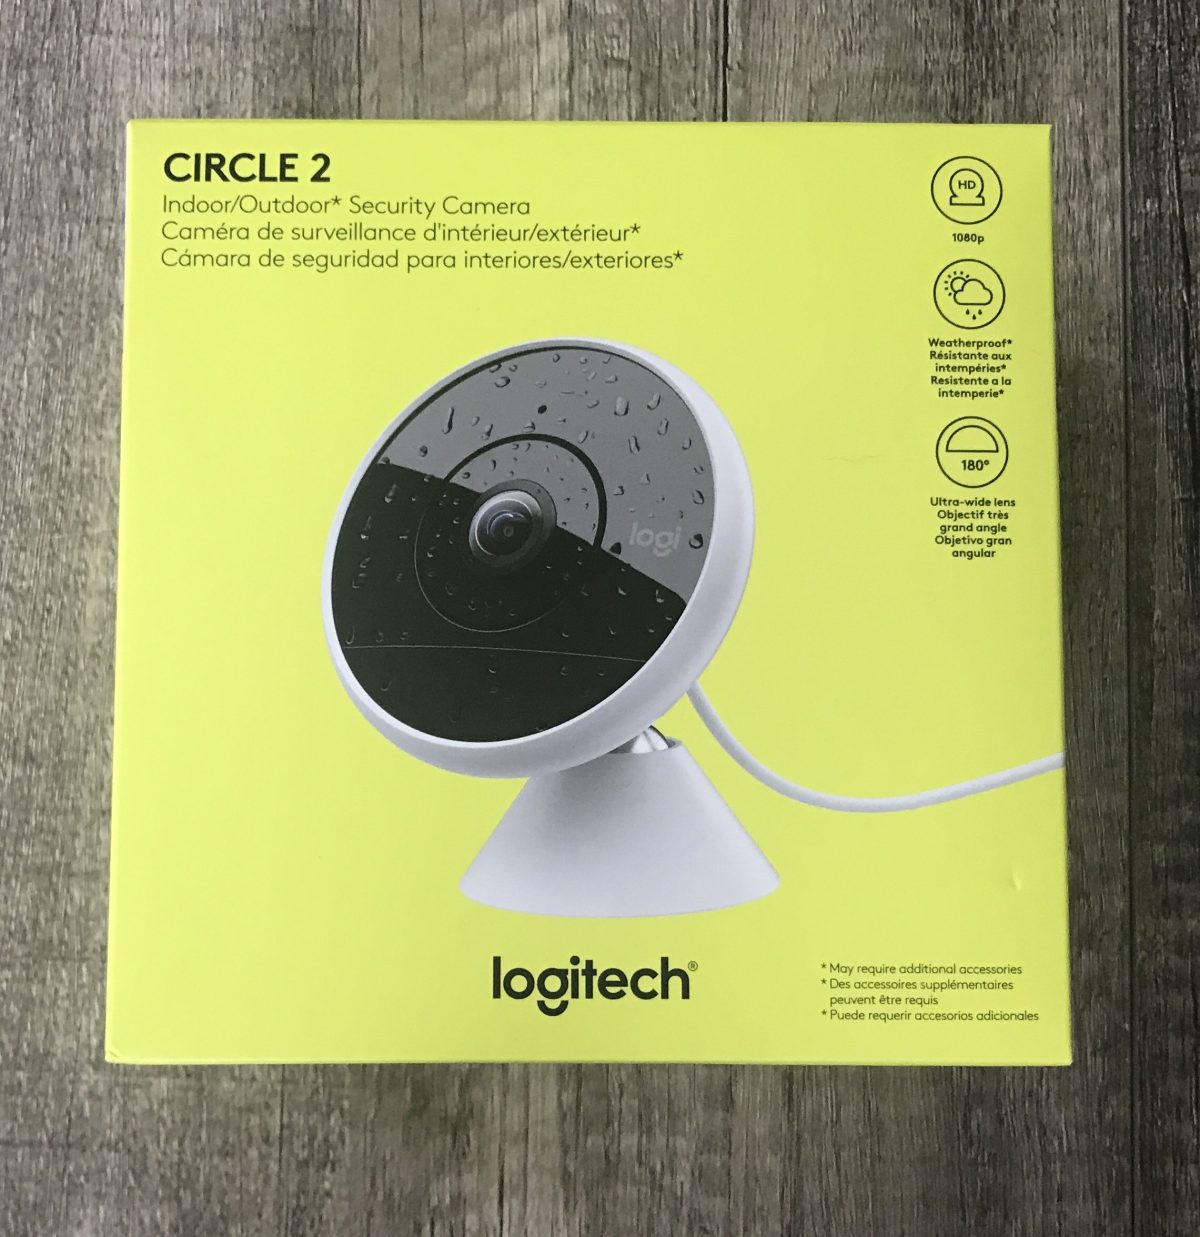 Awesome Tech Gear from Logitech That Will Complete Your Holiday Bin Checkout